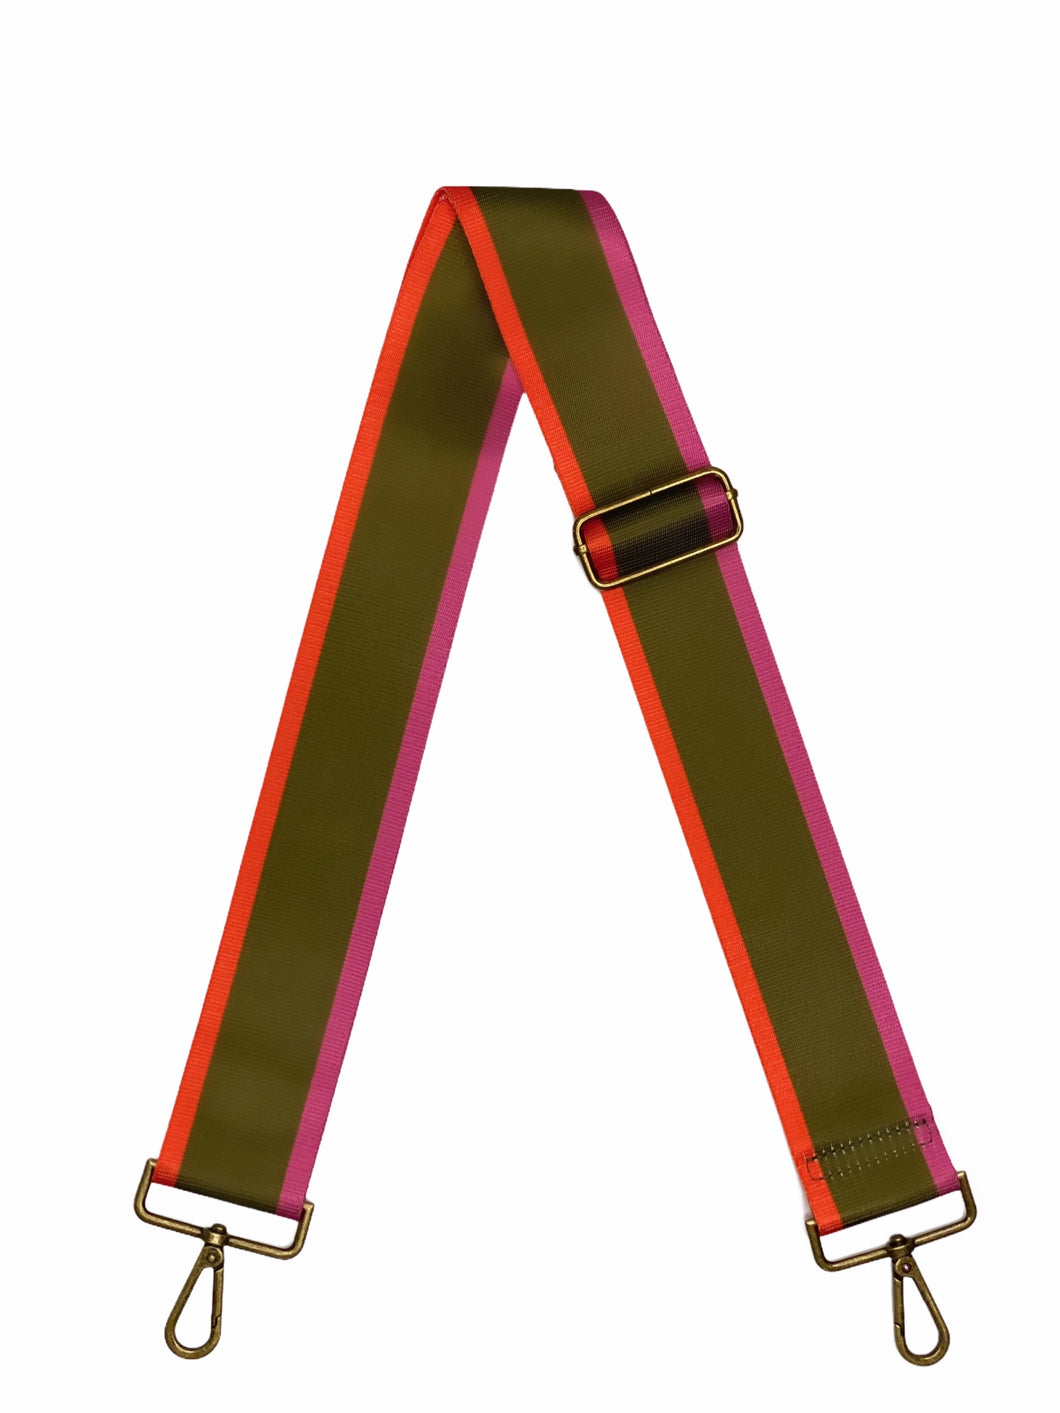 Crossbody Bag Strap - Army Green, Pink, Bright Orange